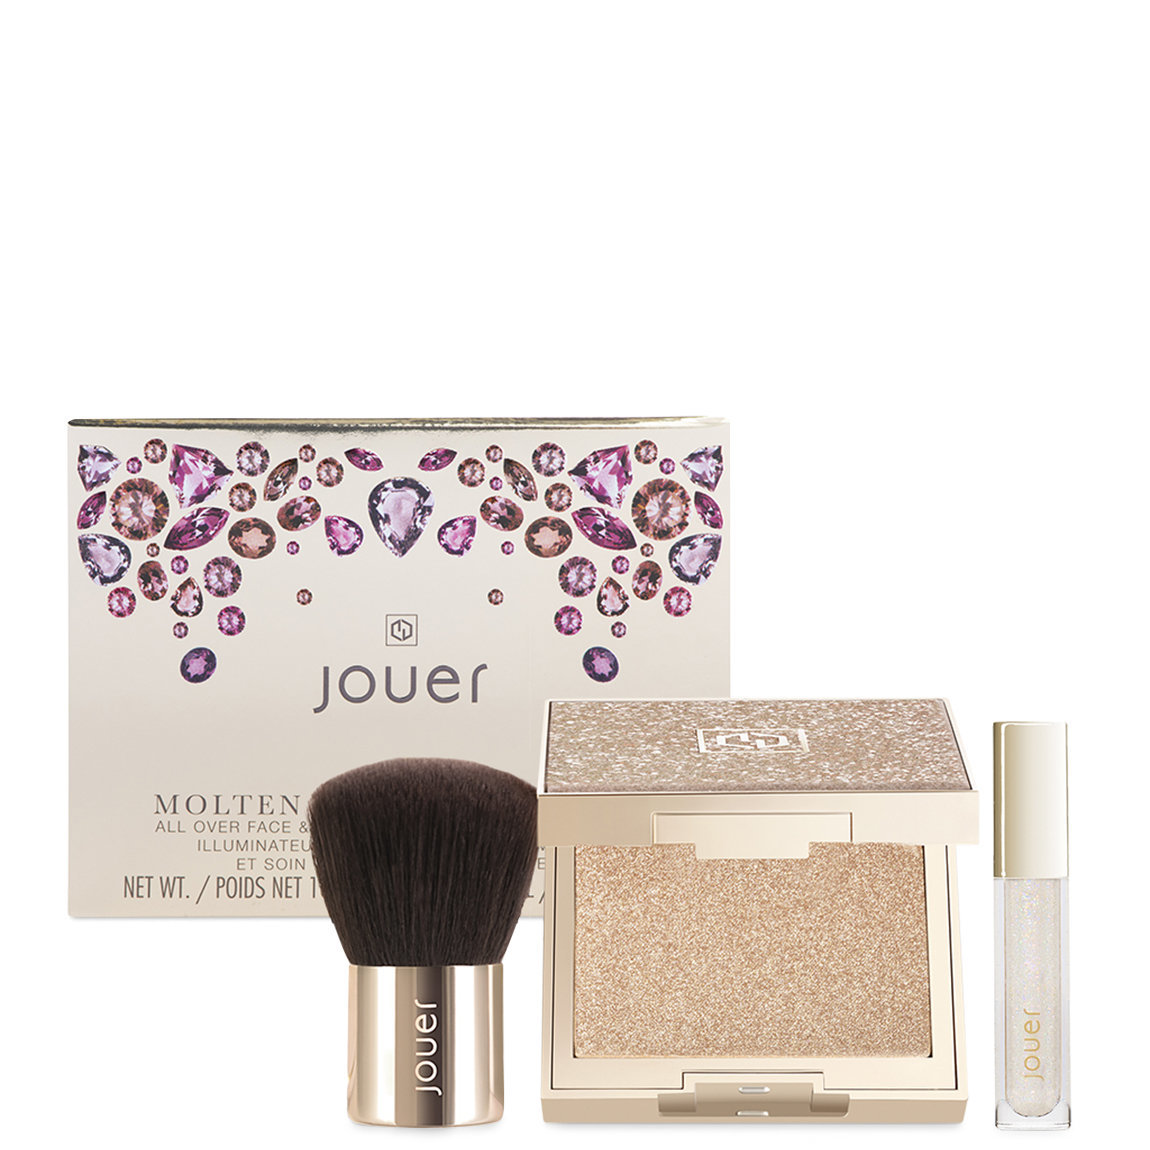 Jouer Cosmetics Molten Glow and Funfetti Set product swatch.